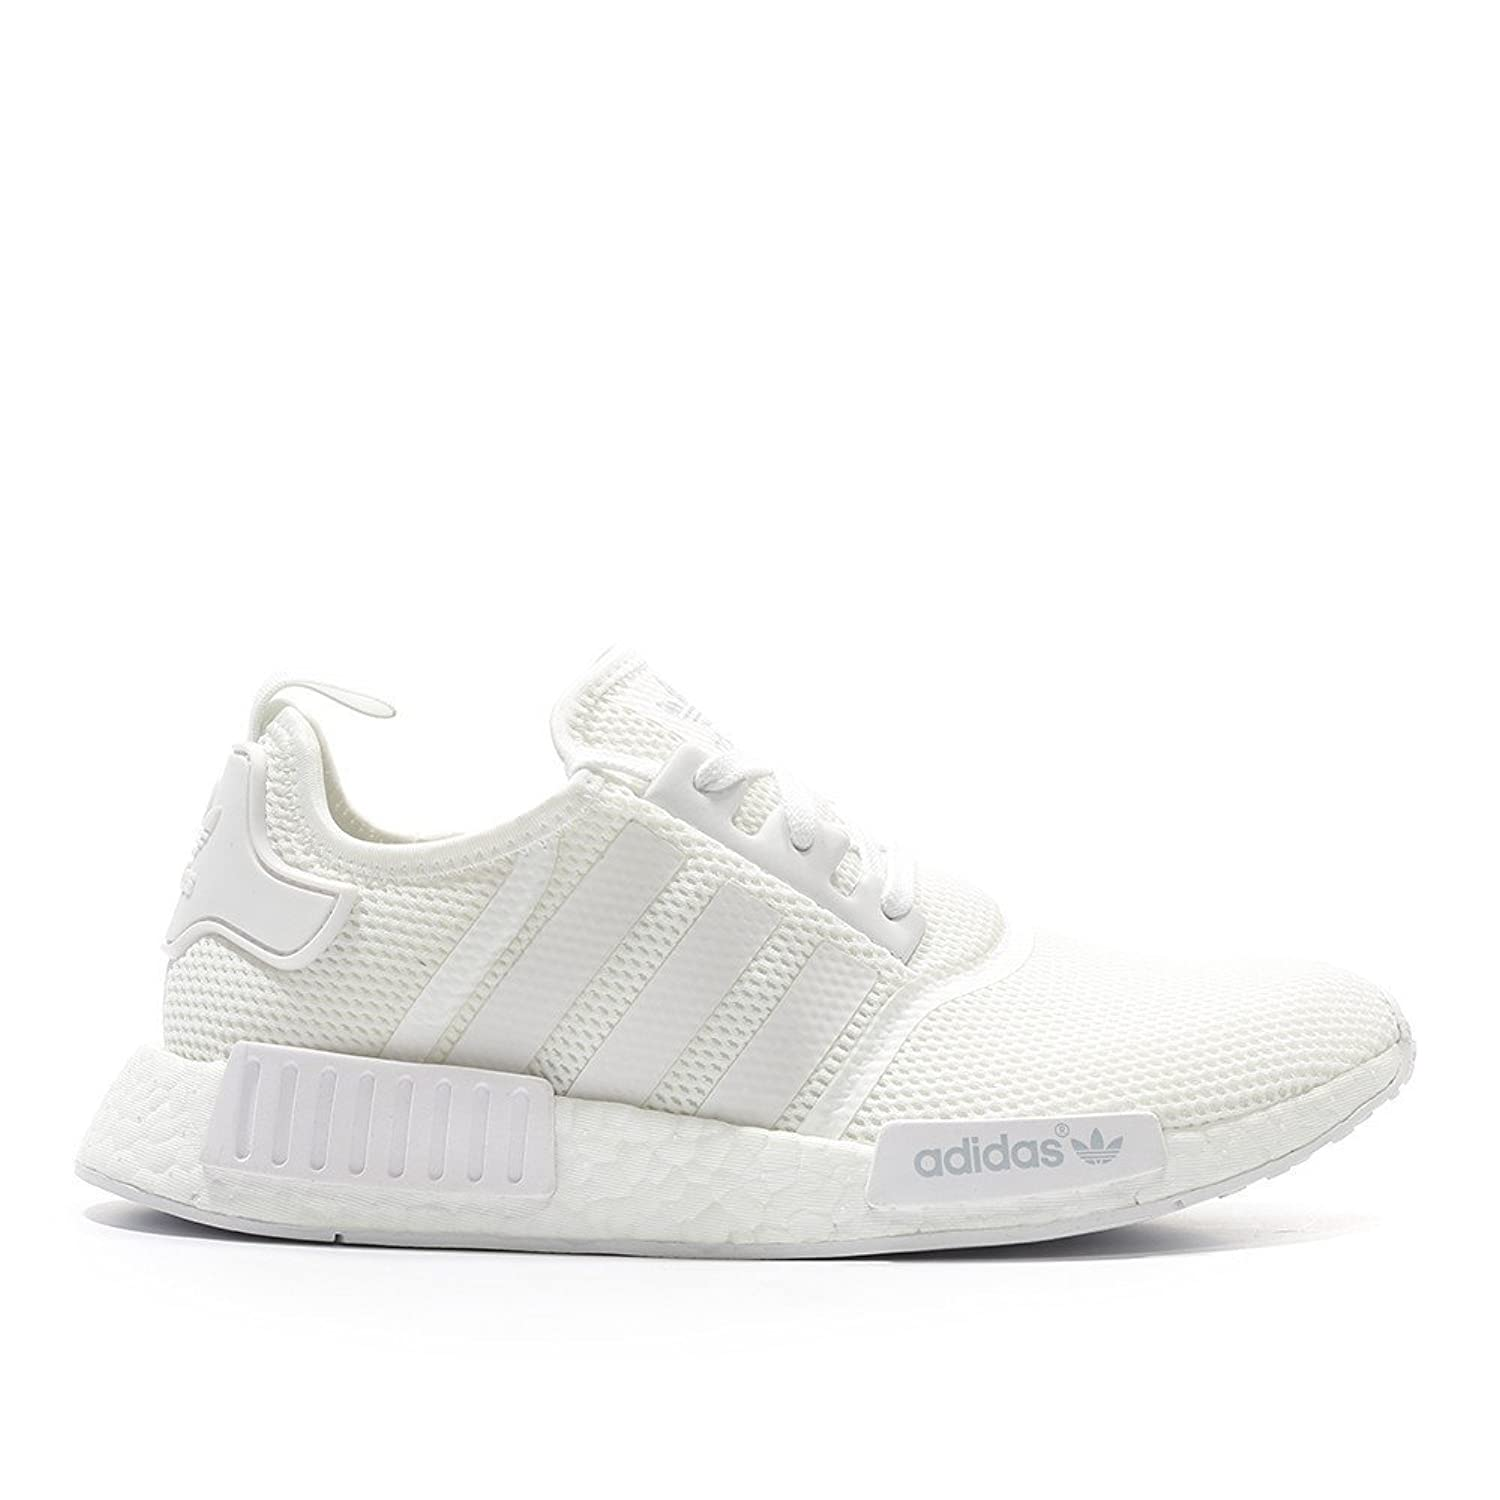 75b0ca383 adidas nmd r1 pk on feet white adidas shoes amazon Equipped.org Blog